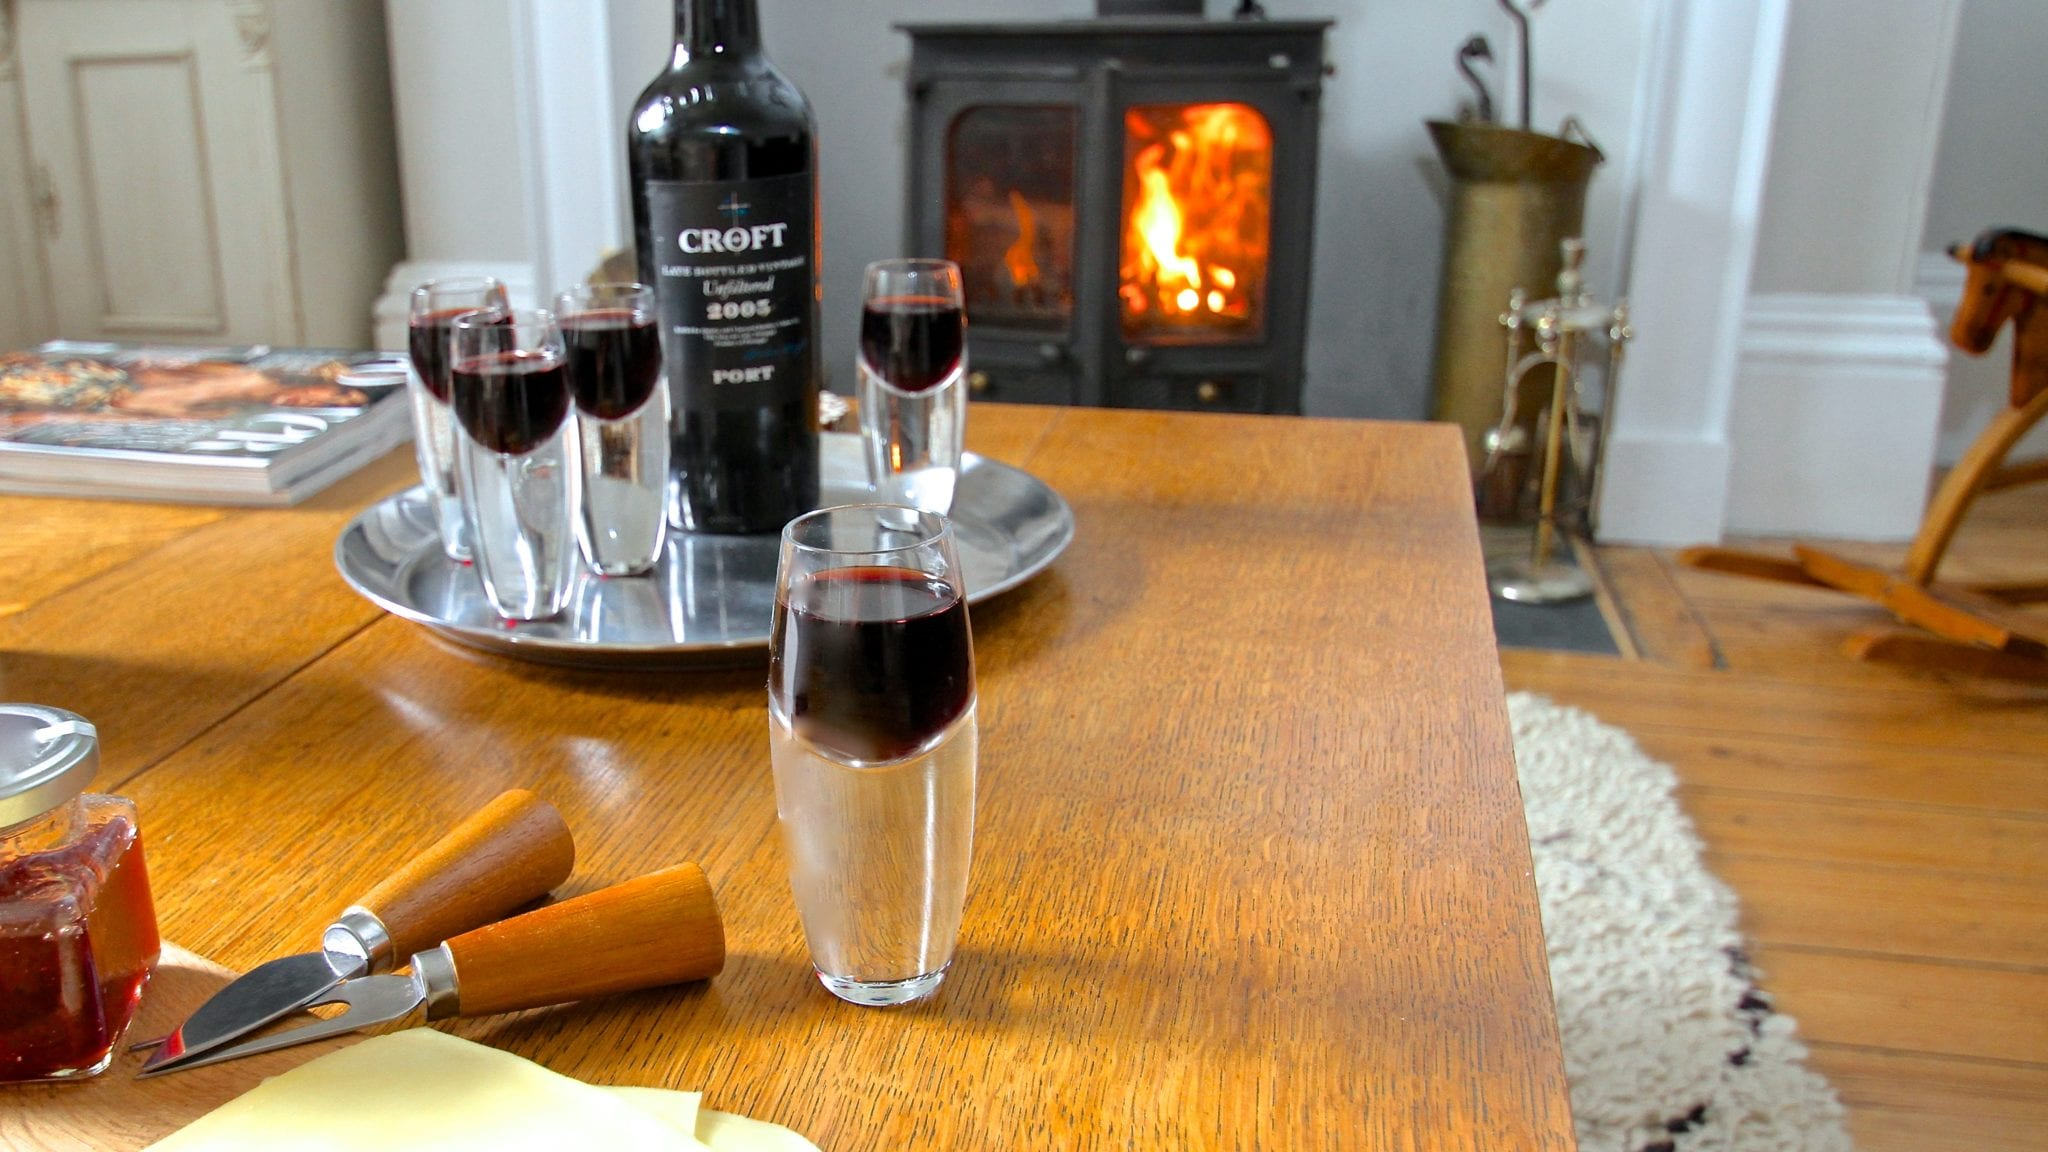 glasses of port and bottle on tray by roaring log fire